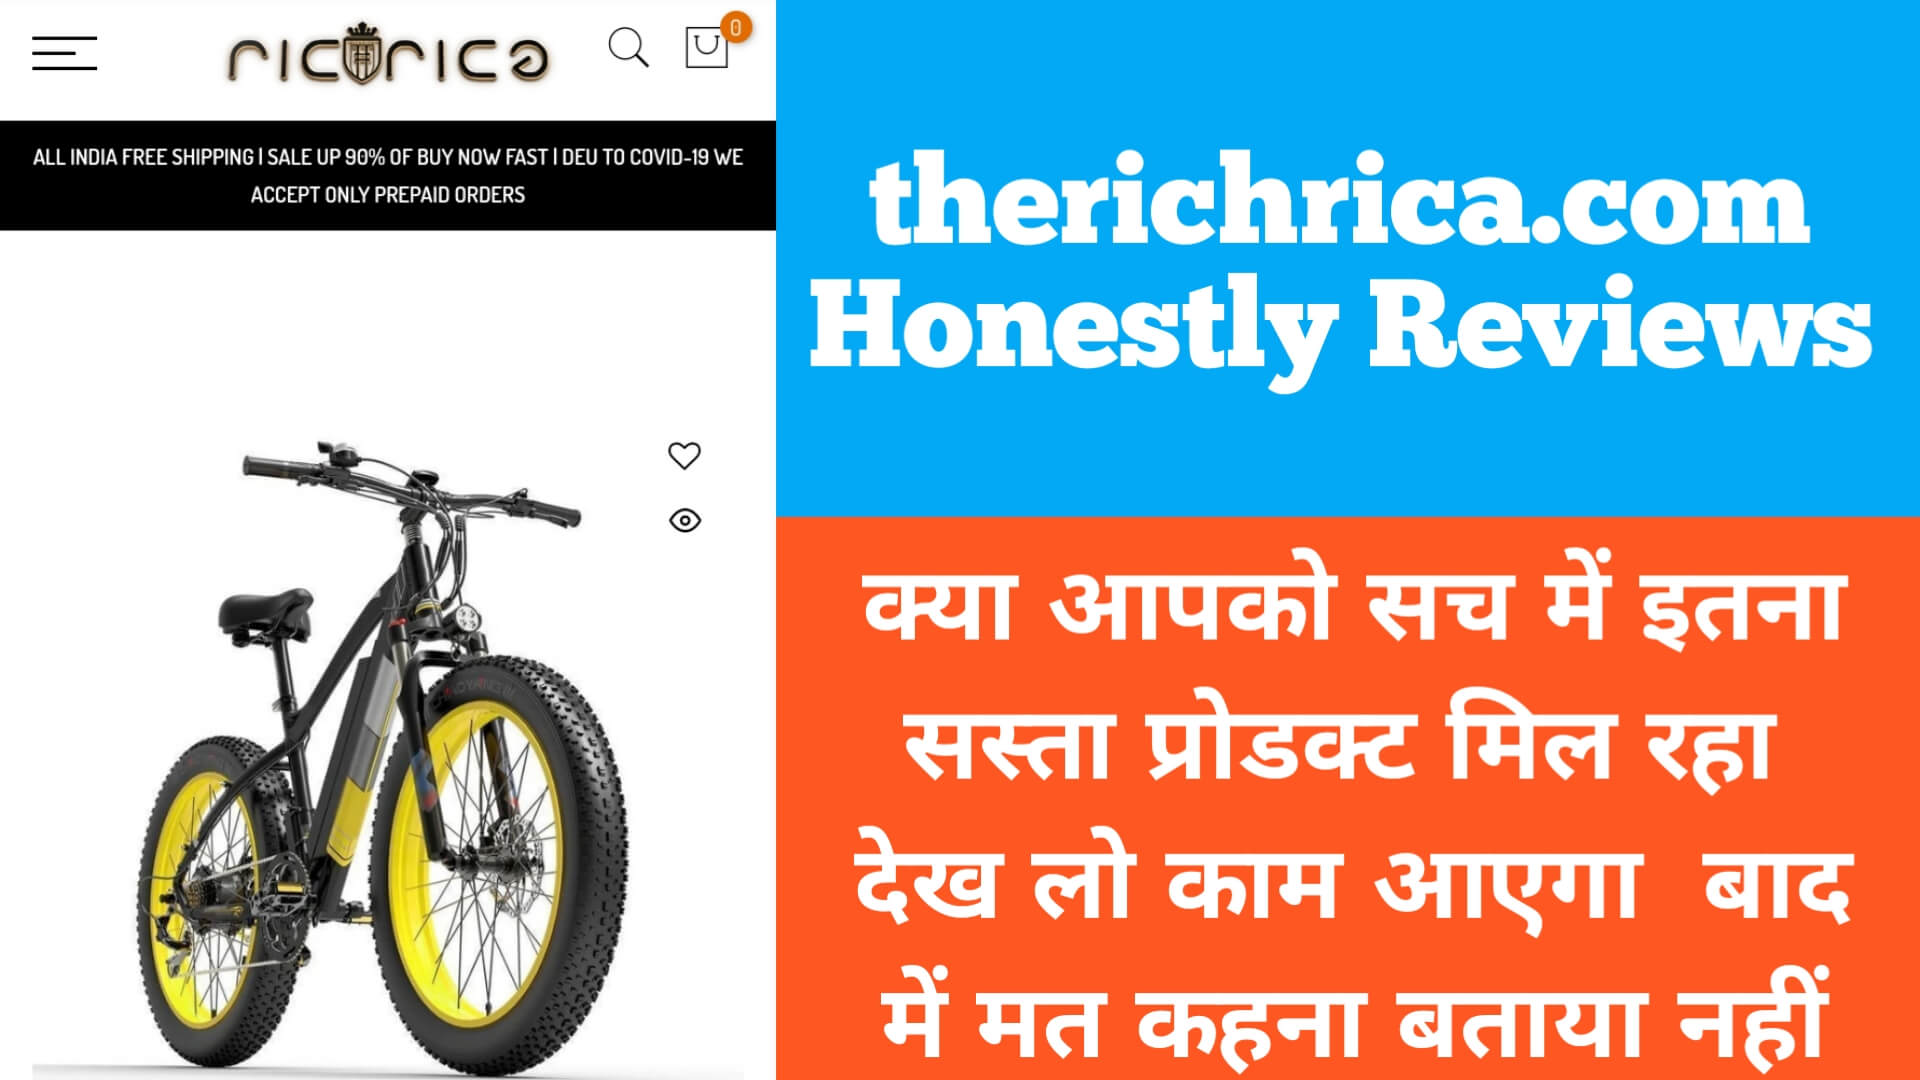 therichrica Website Real Or Fake